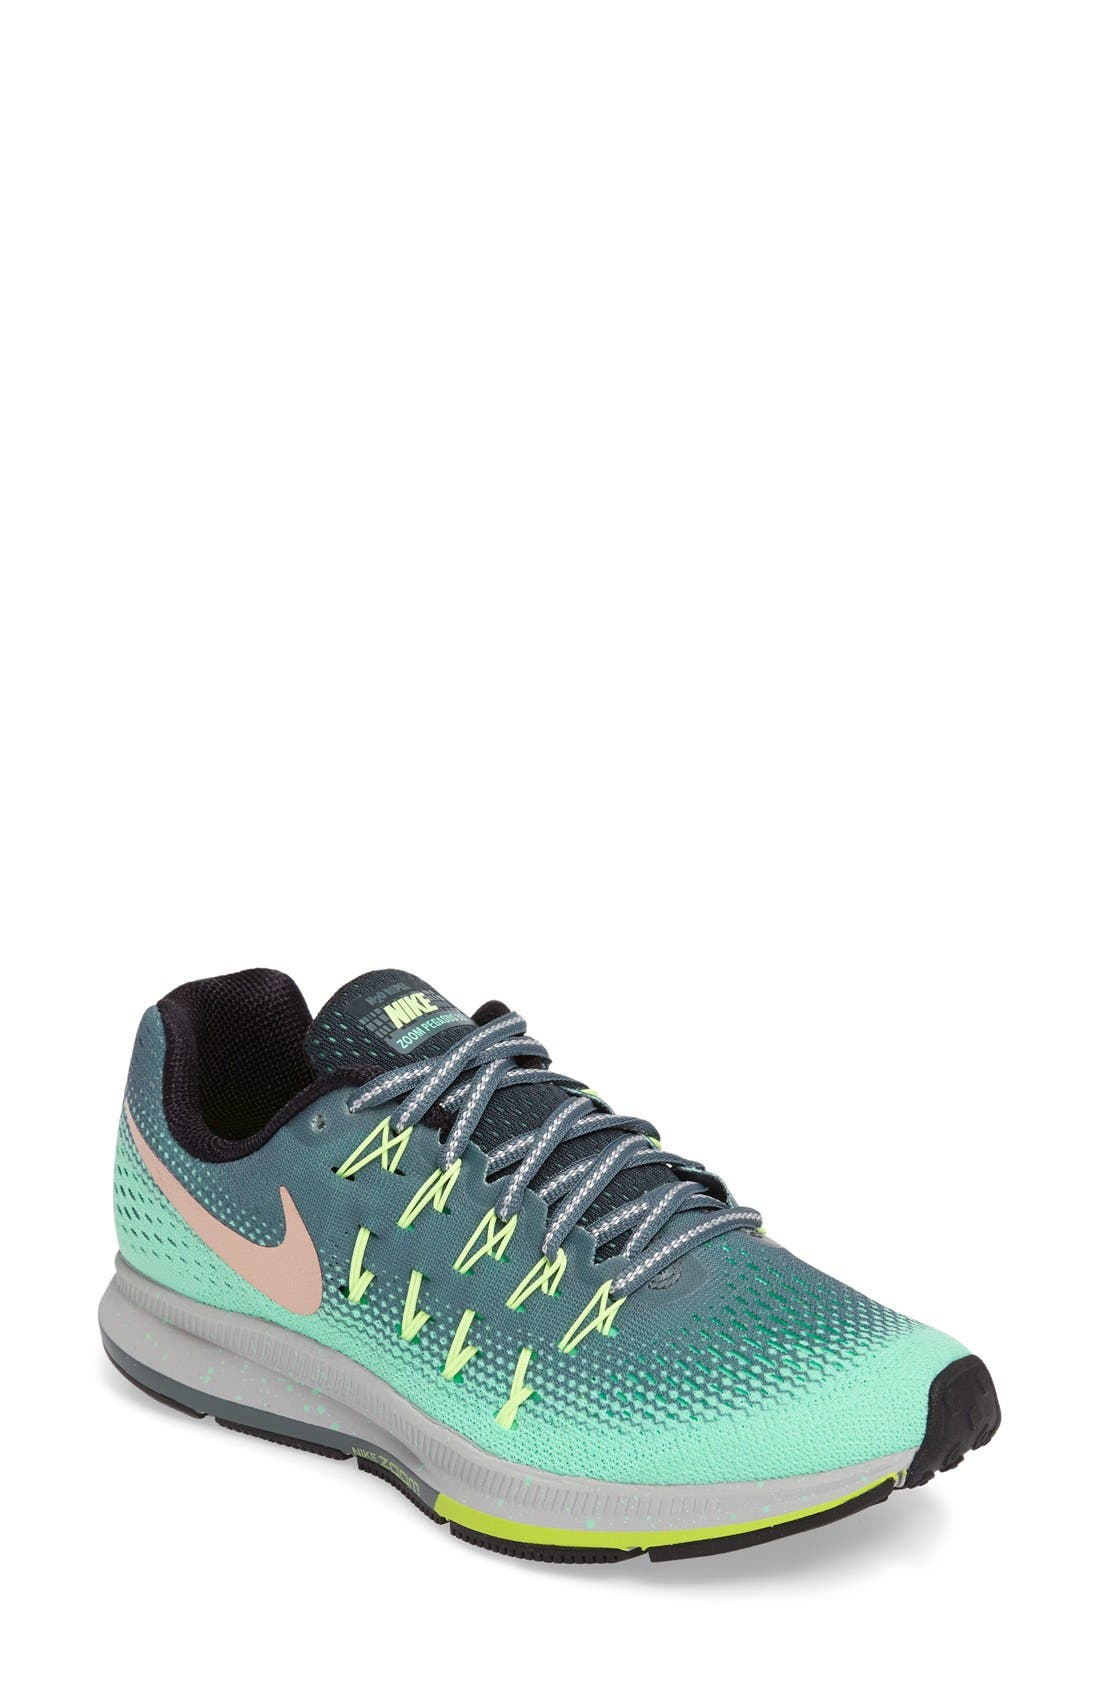 Main Image - Nike Air Zoom Pegasus 33 Shield Running Shoe (Women)